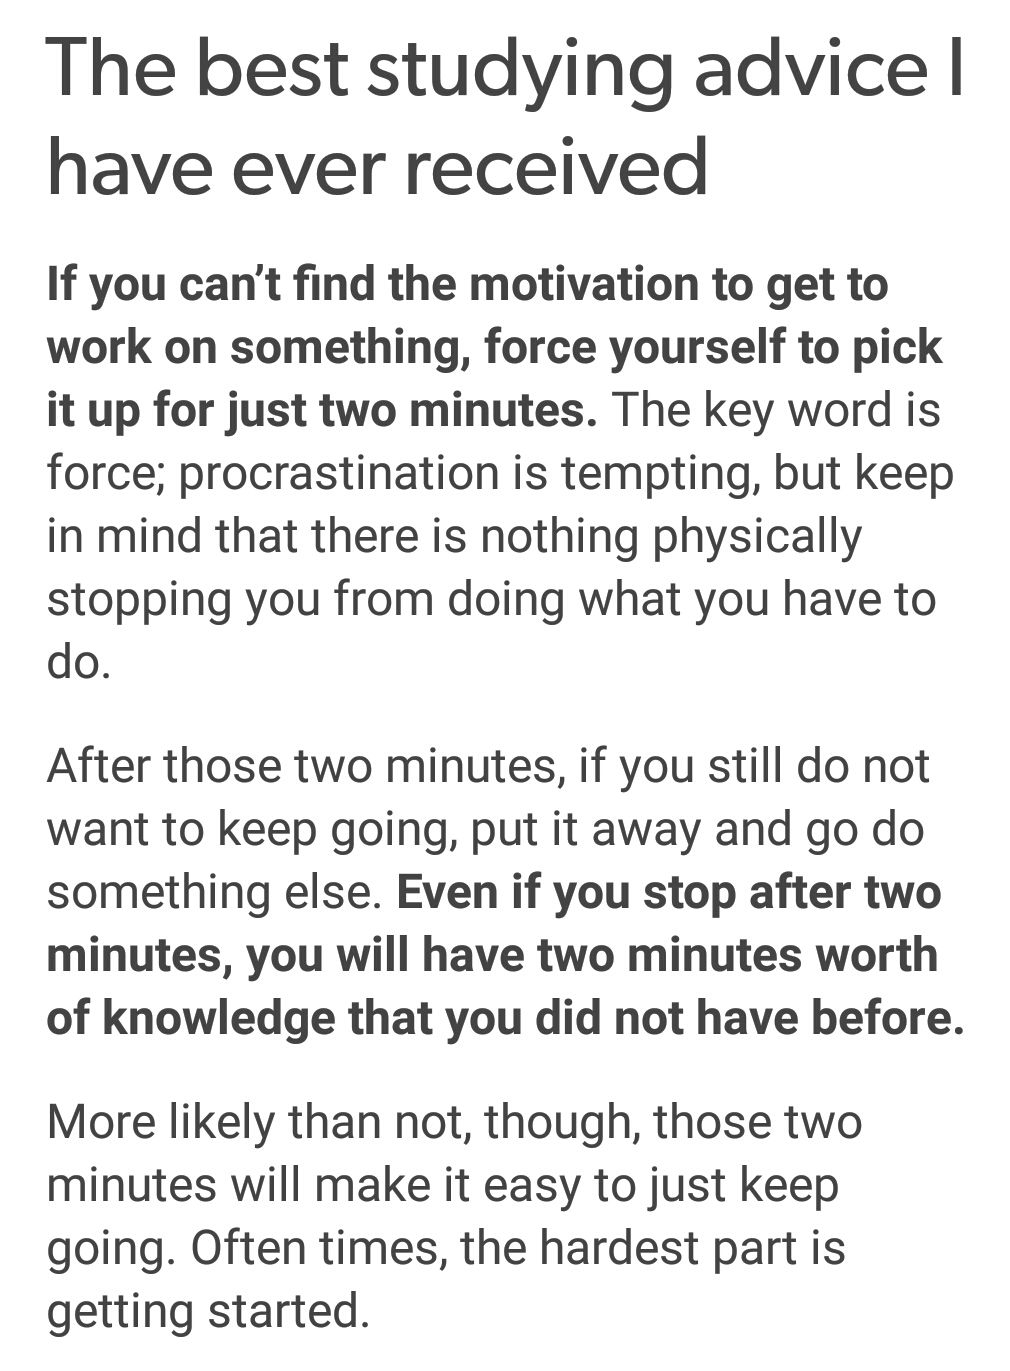 [Image] If you can't find the motivation.. #studymotivationquotes